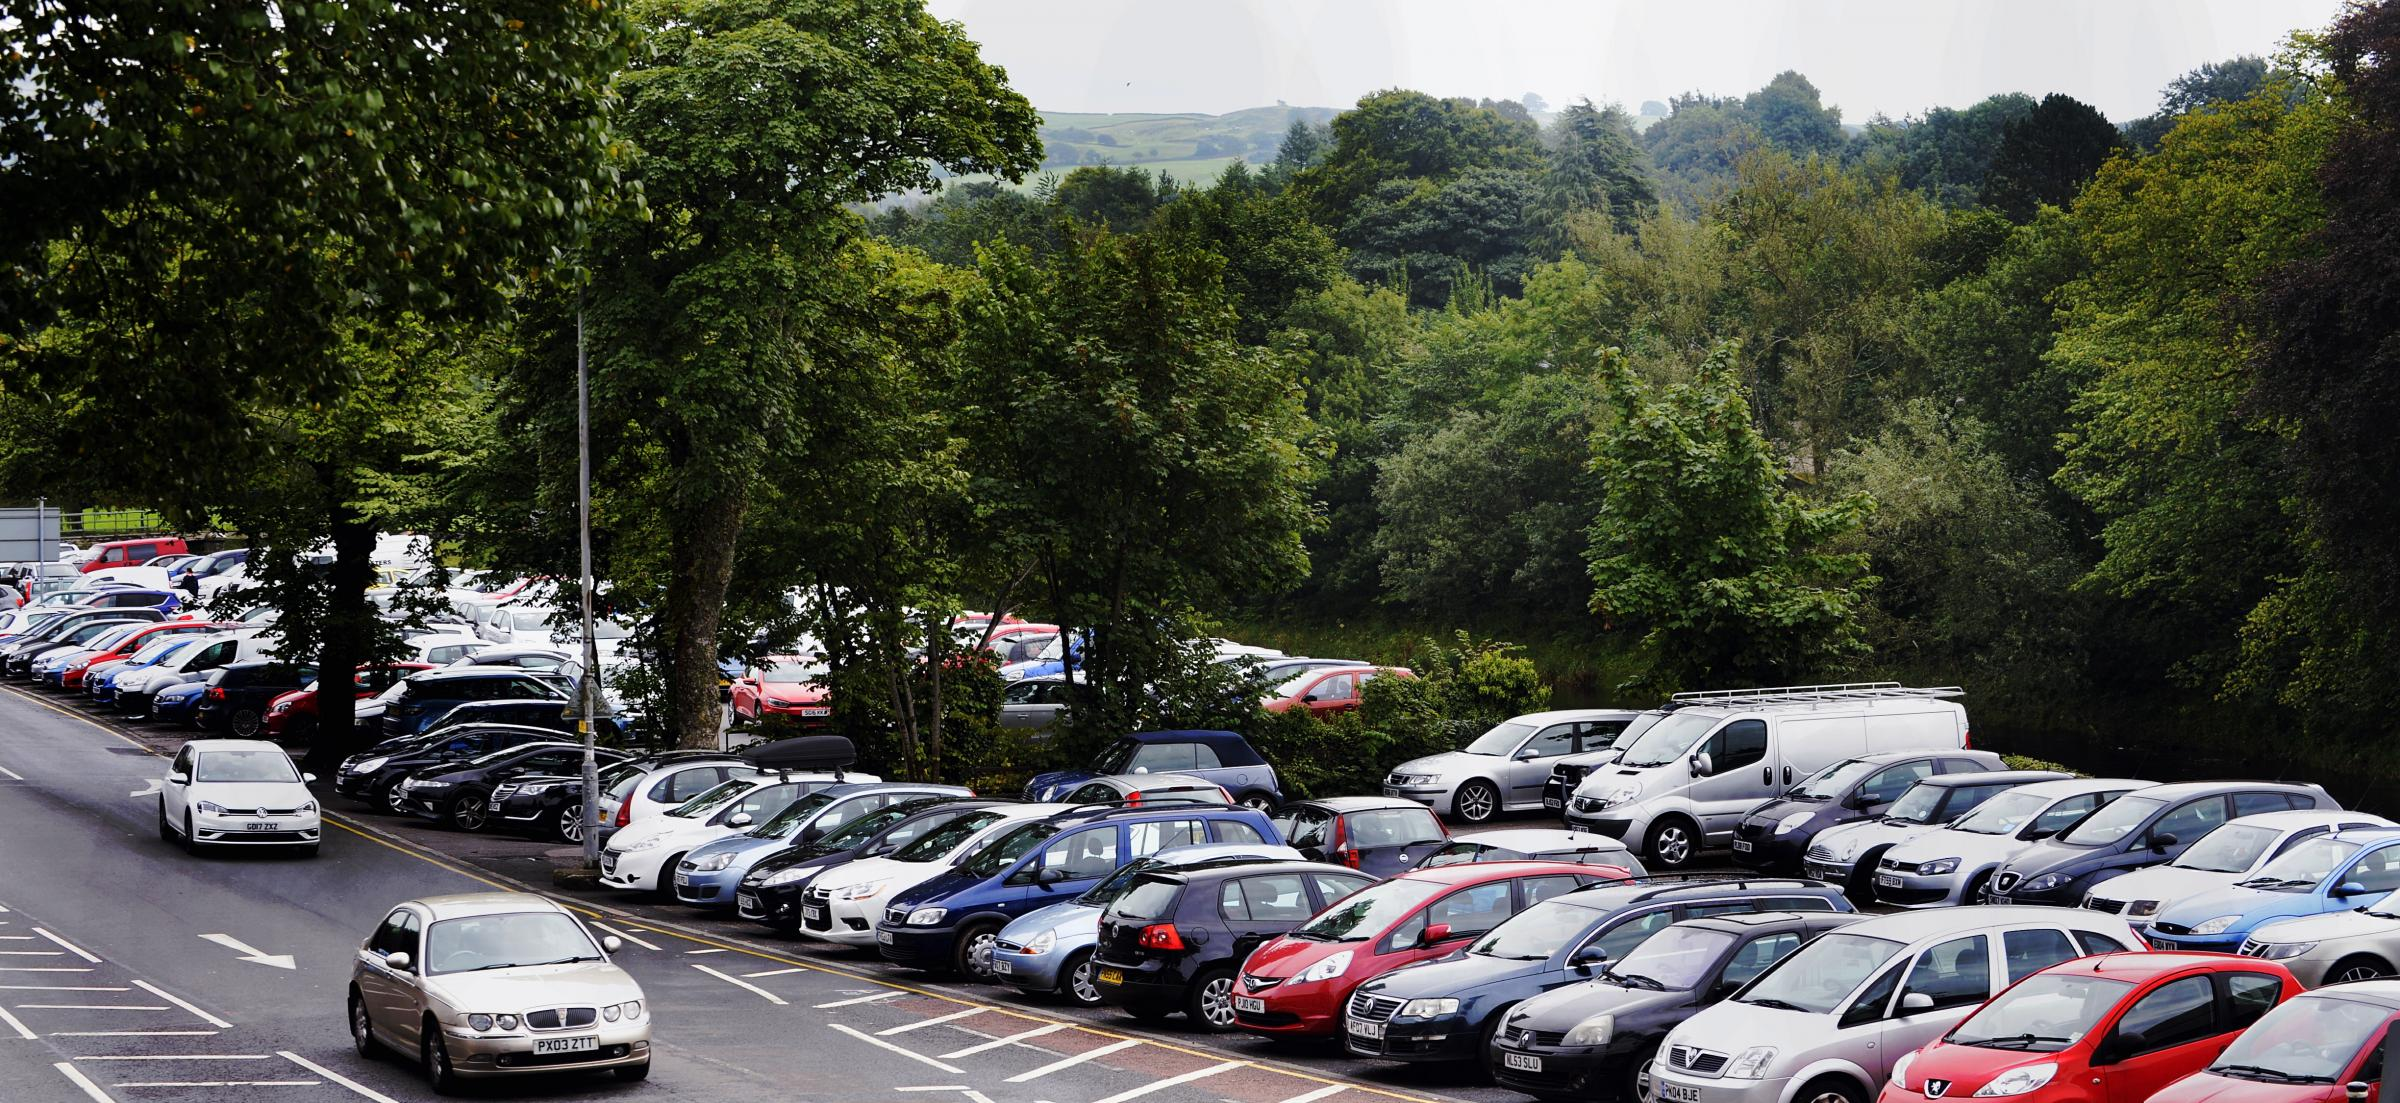 Free Car Park At New Road Kendal To Be Closed By South Lakeland District Council To Create Green Space The Westmorland Gazette